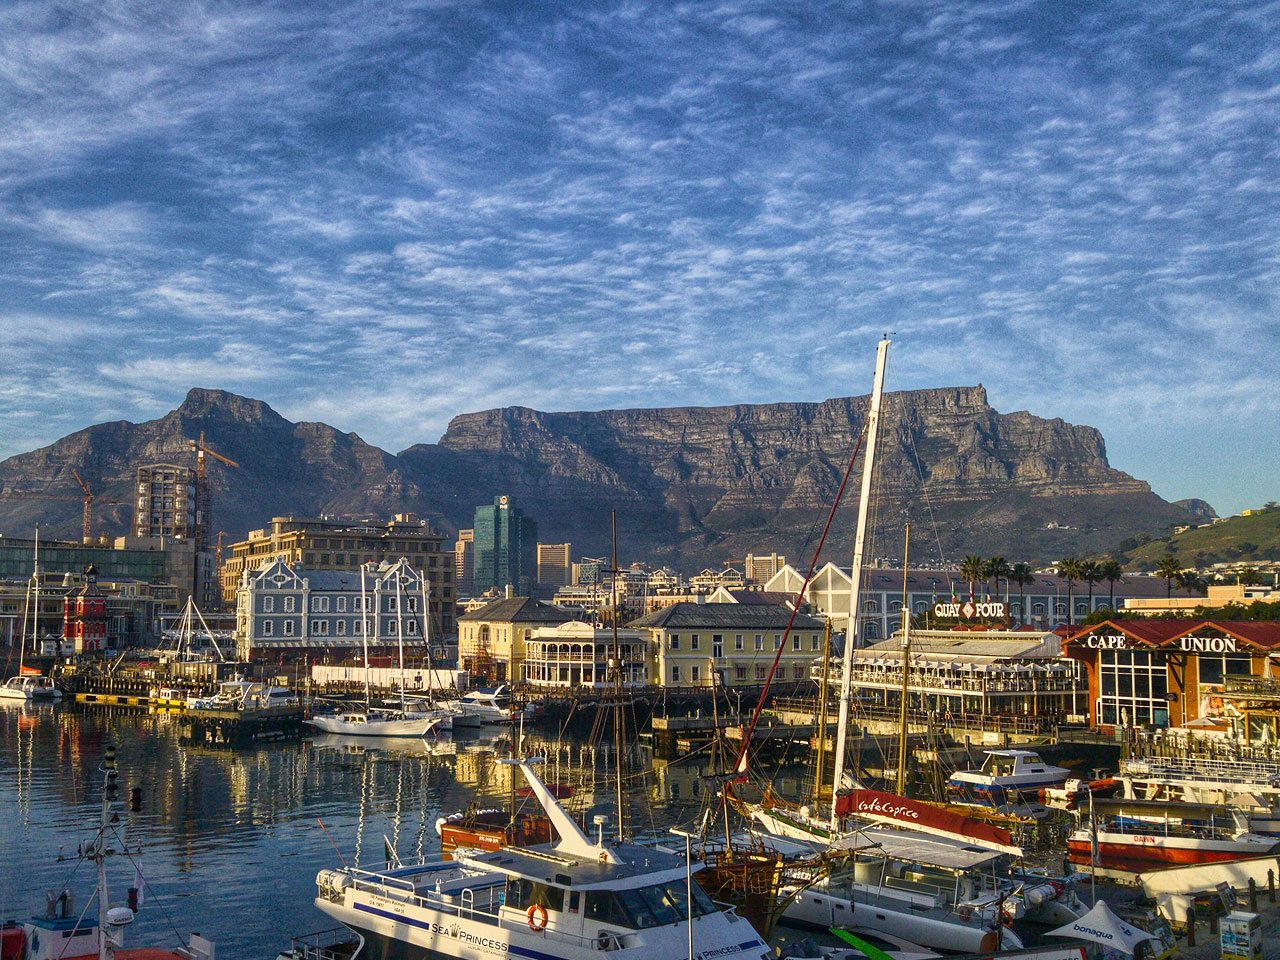 A view of Table Mountain beneath clouded blue skies over the Cape Town harbour.